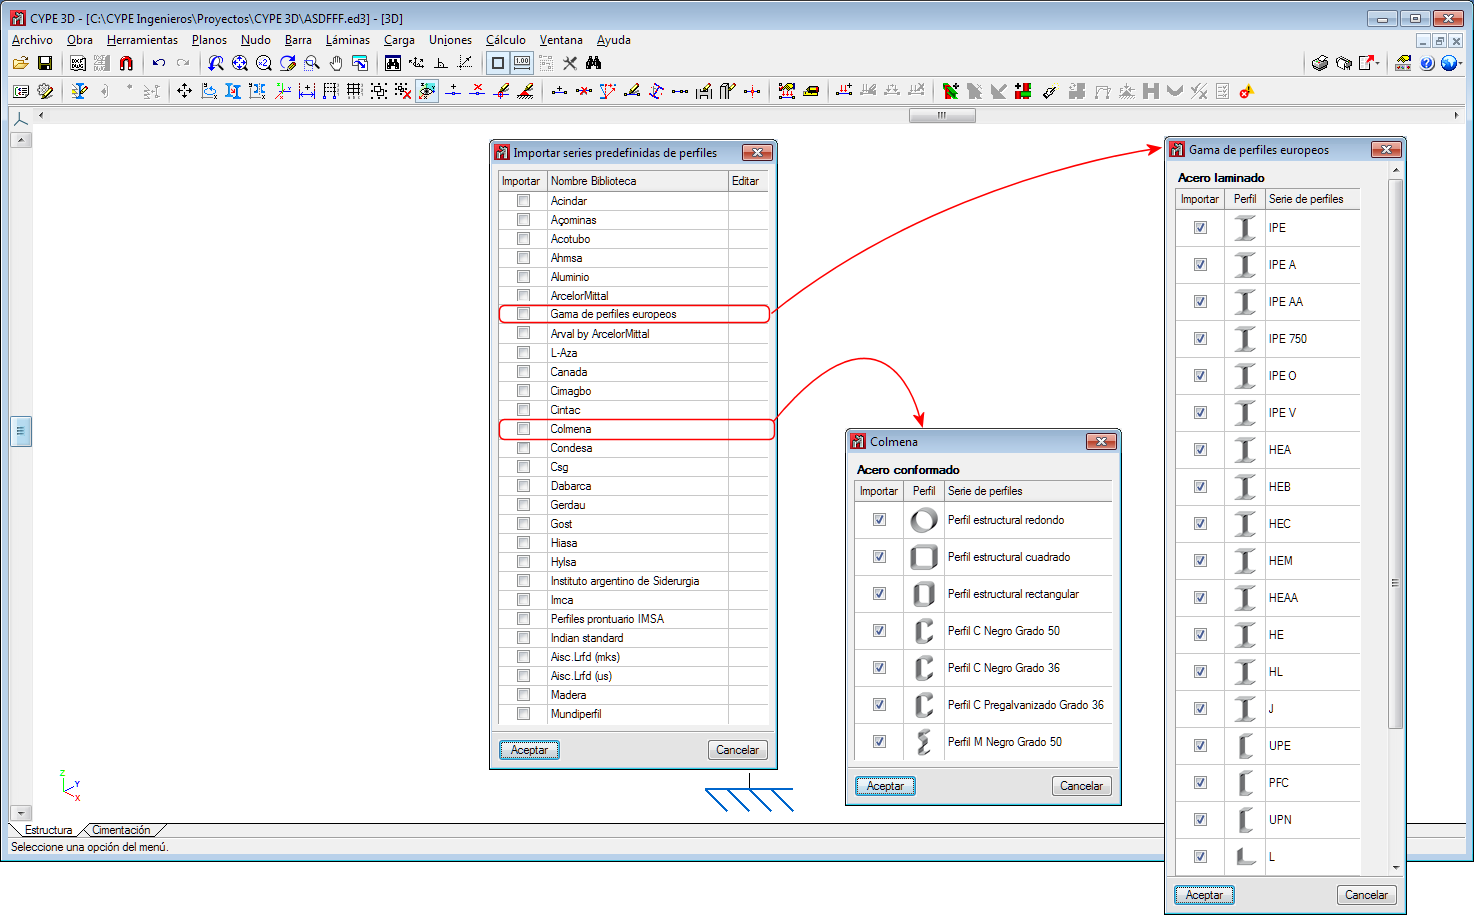 CYPECAD and CYPE 3D. New section library